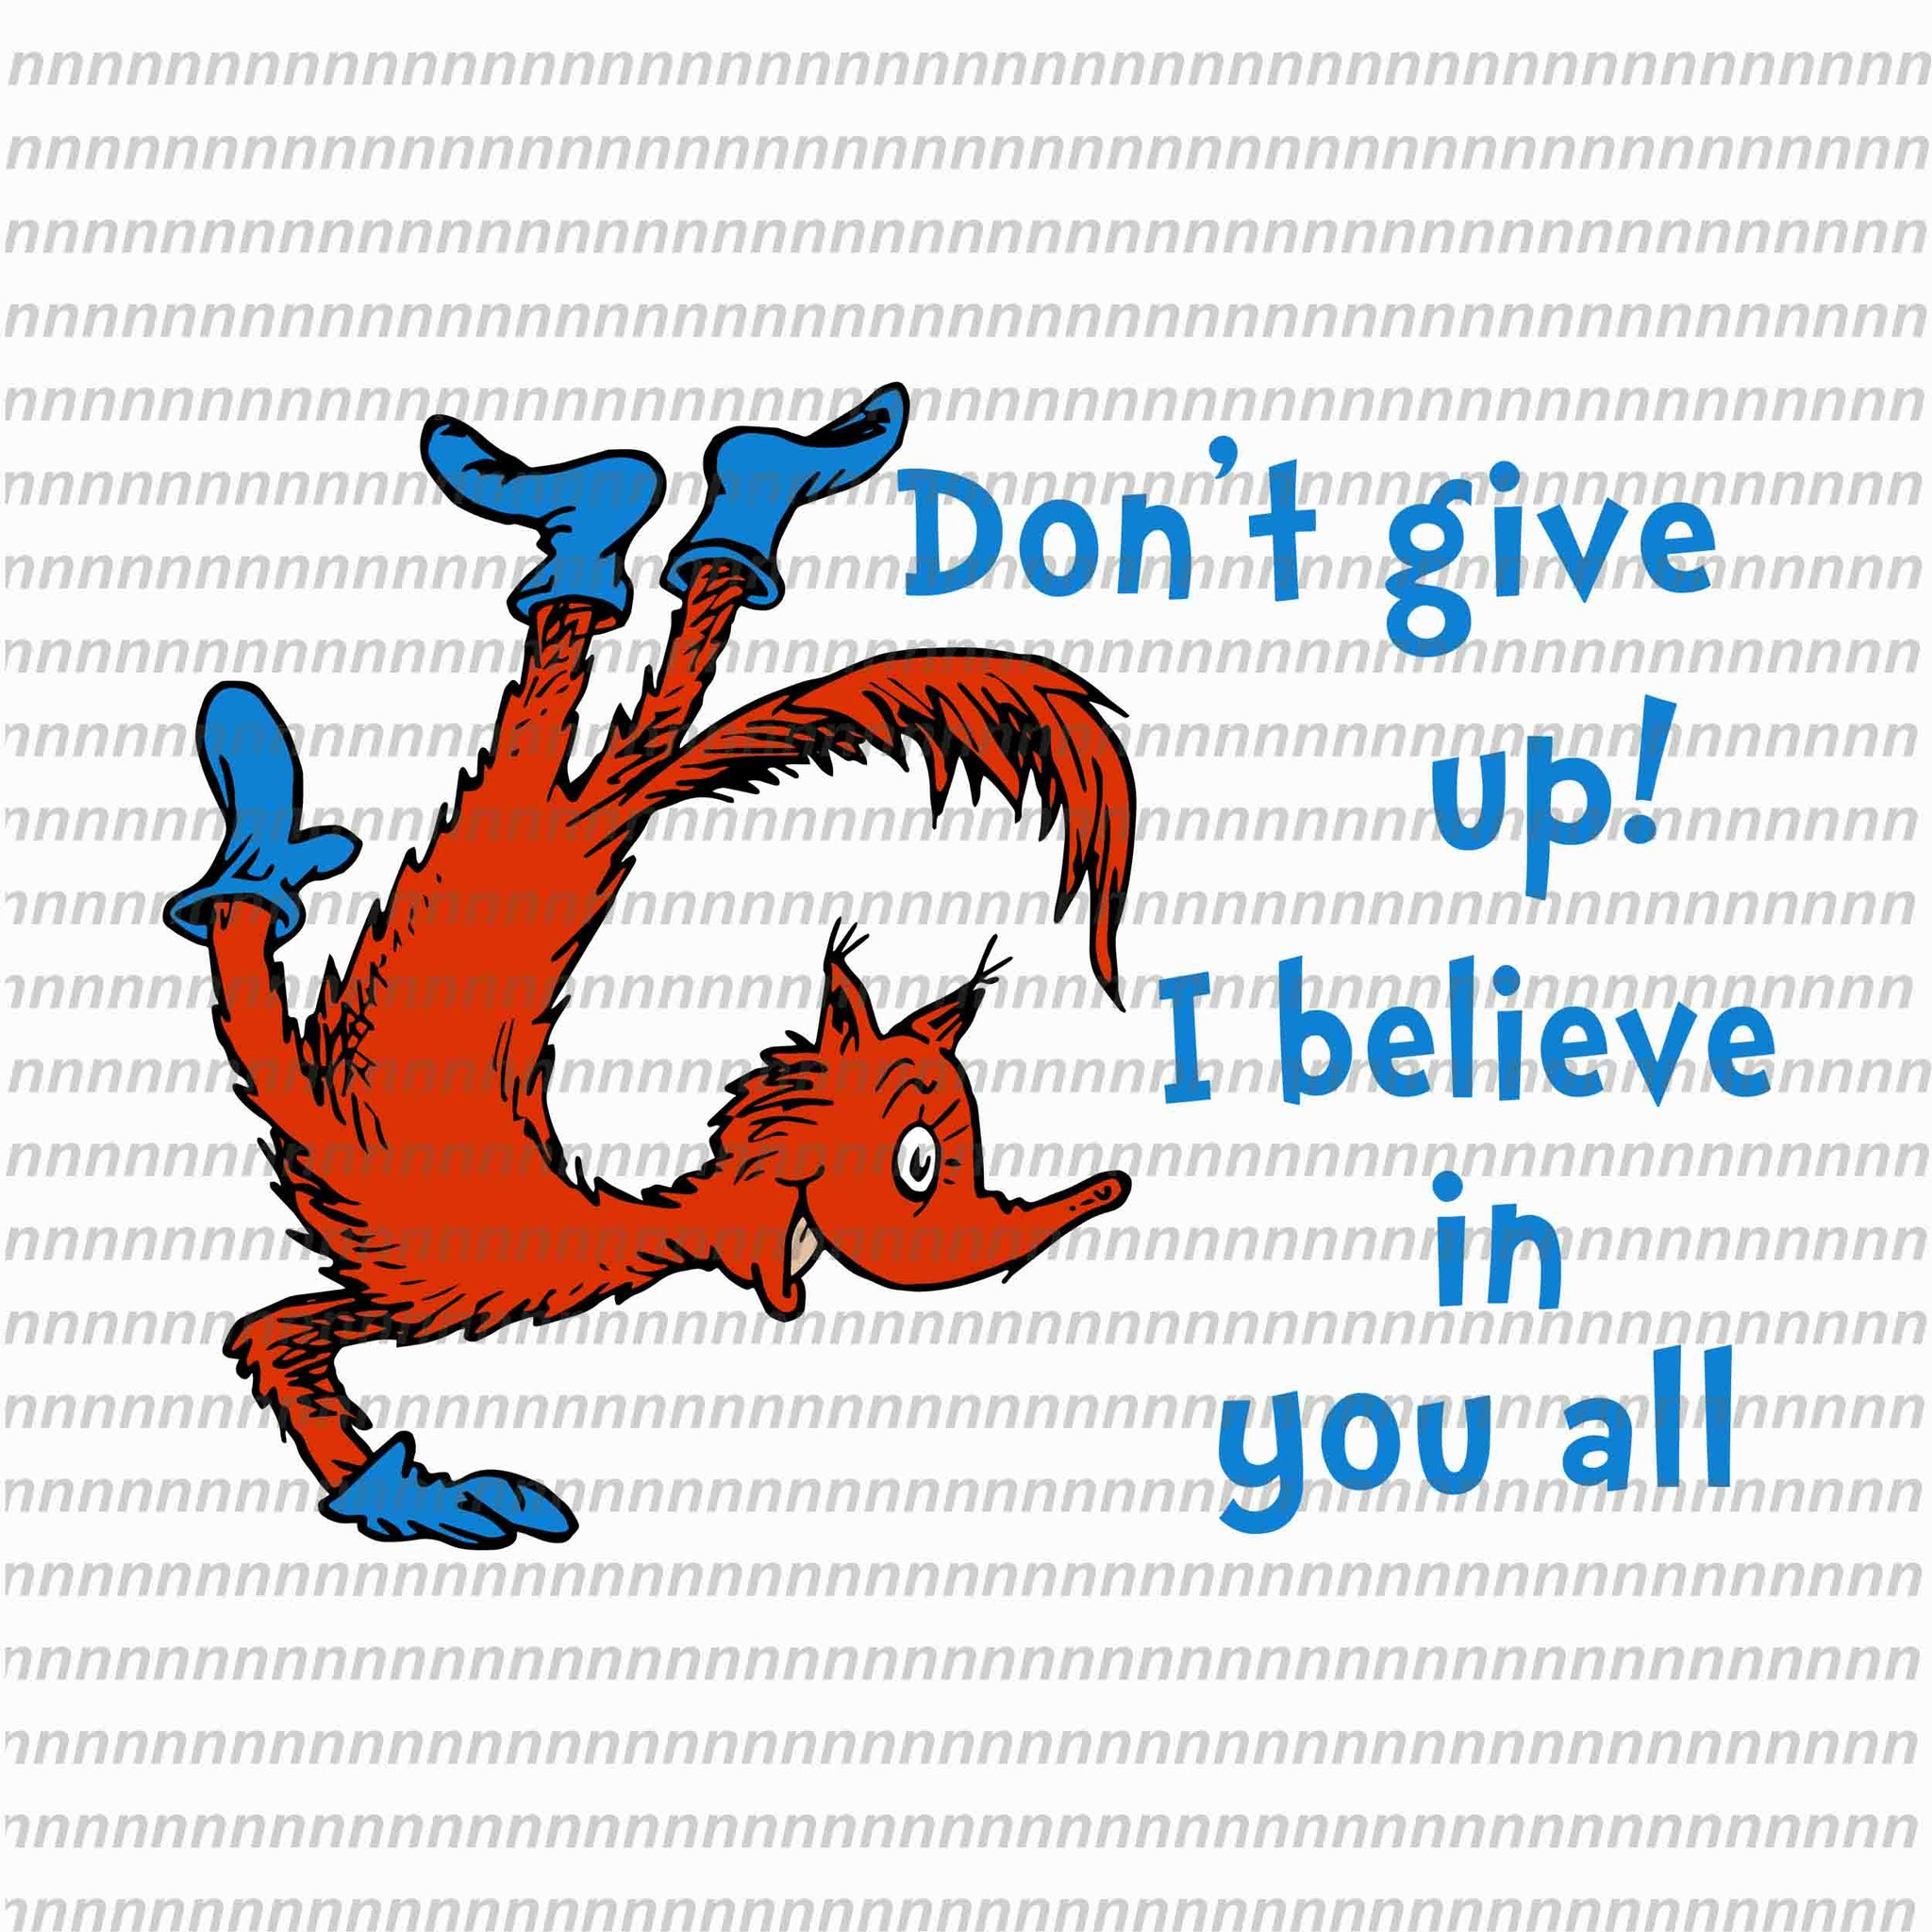 Don't give up i believe in you all, dr seuss svg,dr seuss vector, dr seuss quote, dr seuss design, Cat in the hat svg, thing 1 thing 2 thing 3, svg, png, dxf, eps file